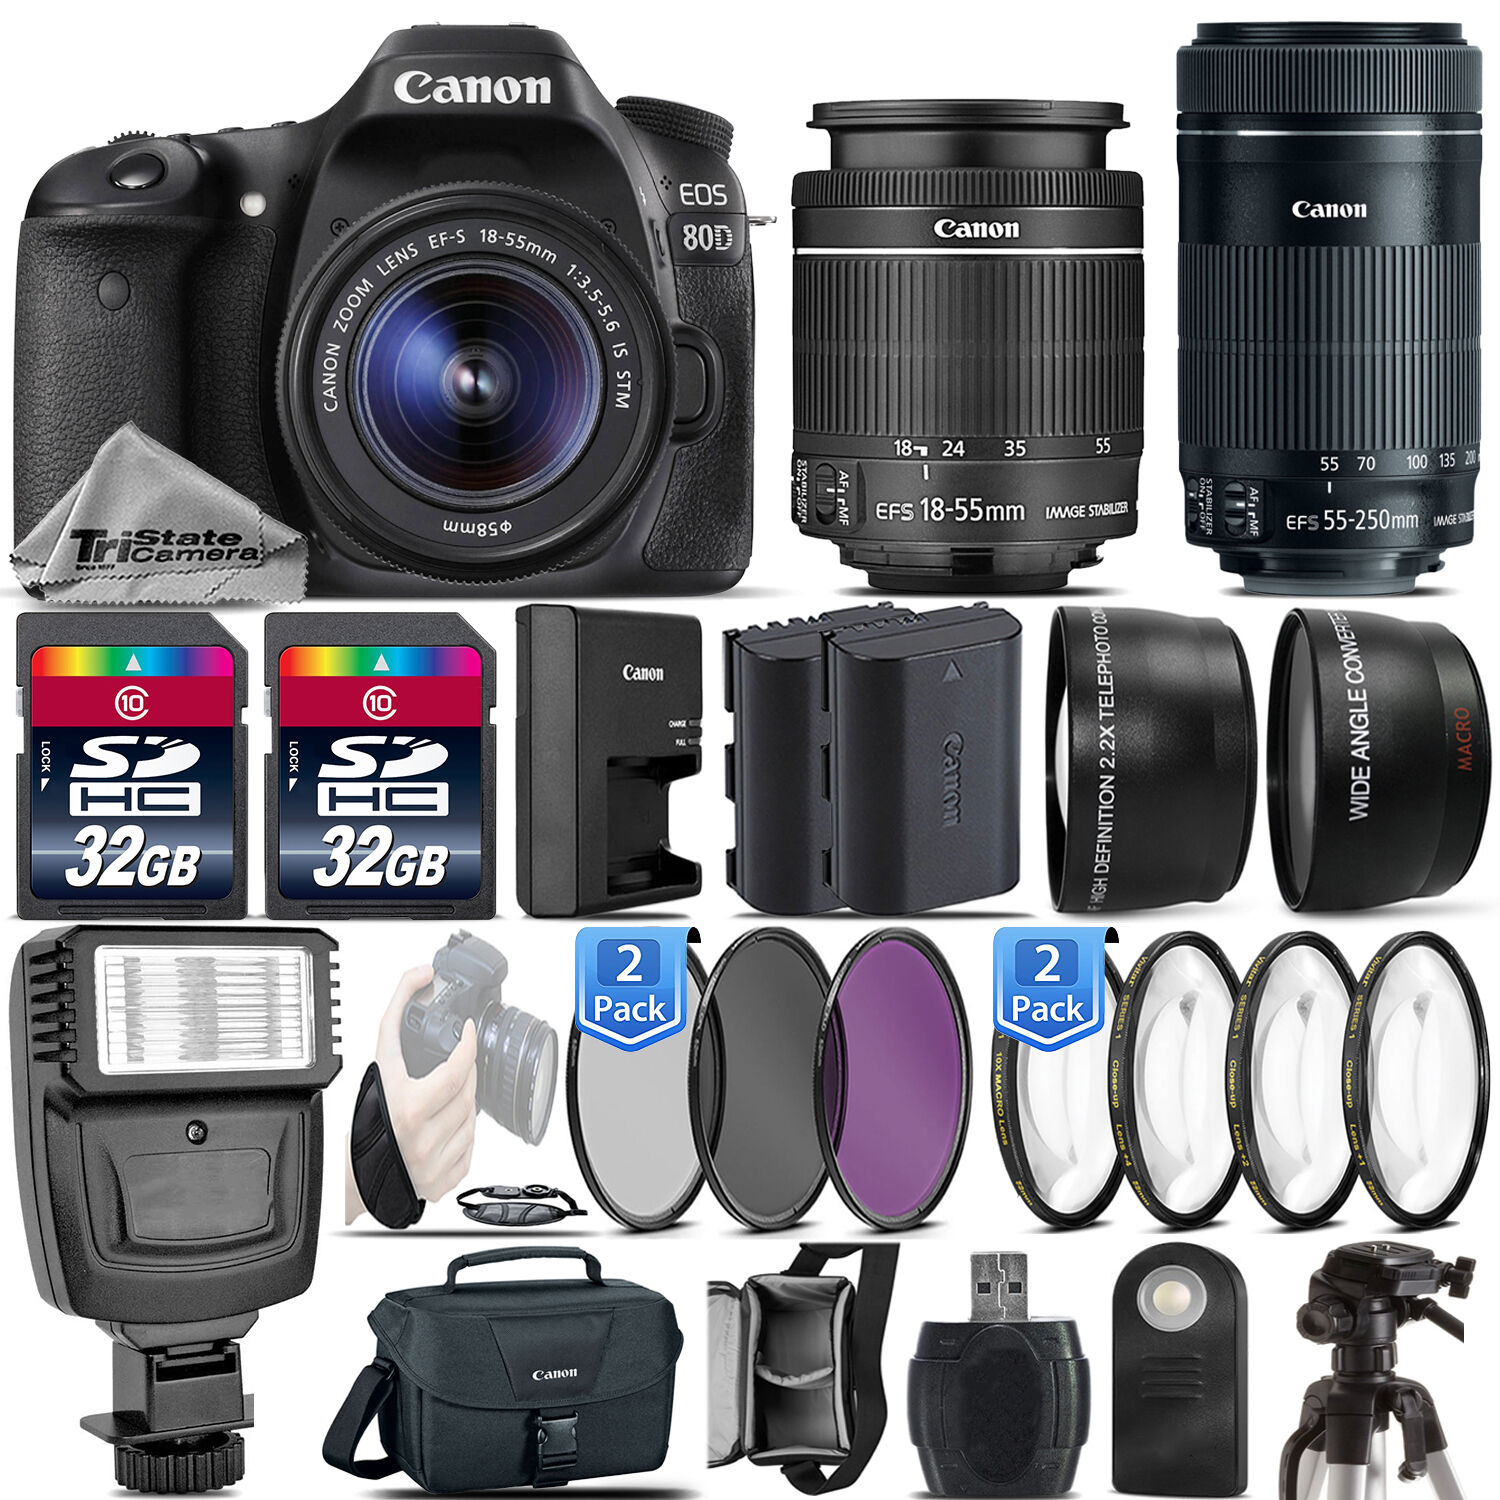 Canon Eos 80d Dslr Camera 18 55mm Is Stm 55 250mm Lens 1200d Kit Iii Non 1 Of 1only 3 Available